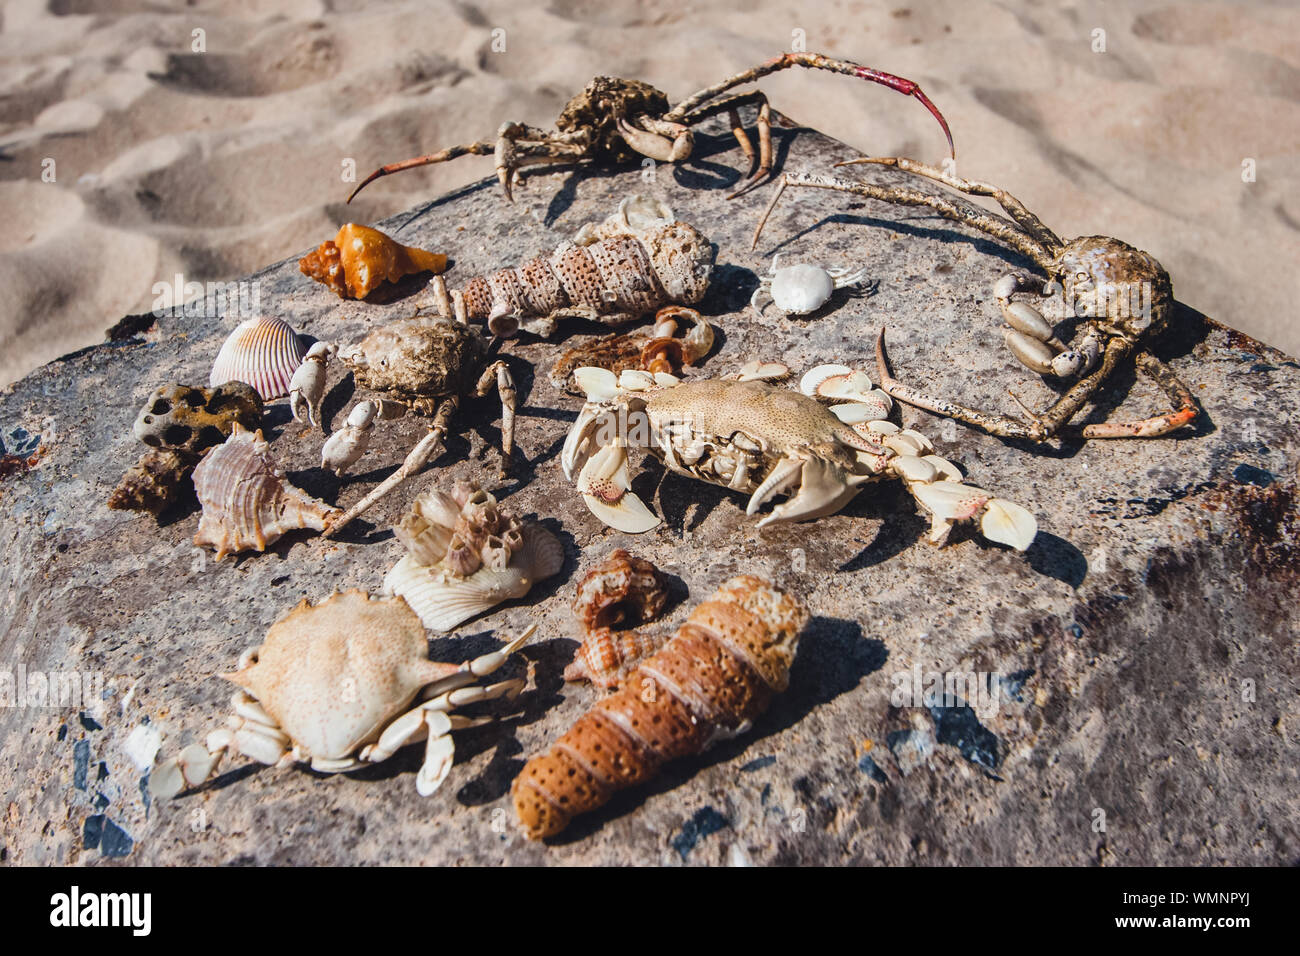 Beach finds. Dry crabs, shells, sea creatures, seafood collected on the beach, seafood lie on a stone on the sand. Claws, paws, dried skin. Stock Photo